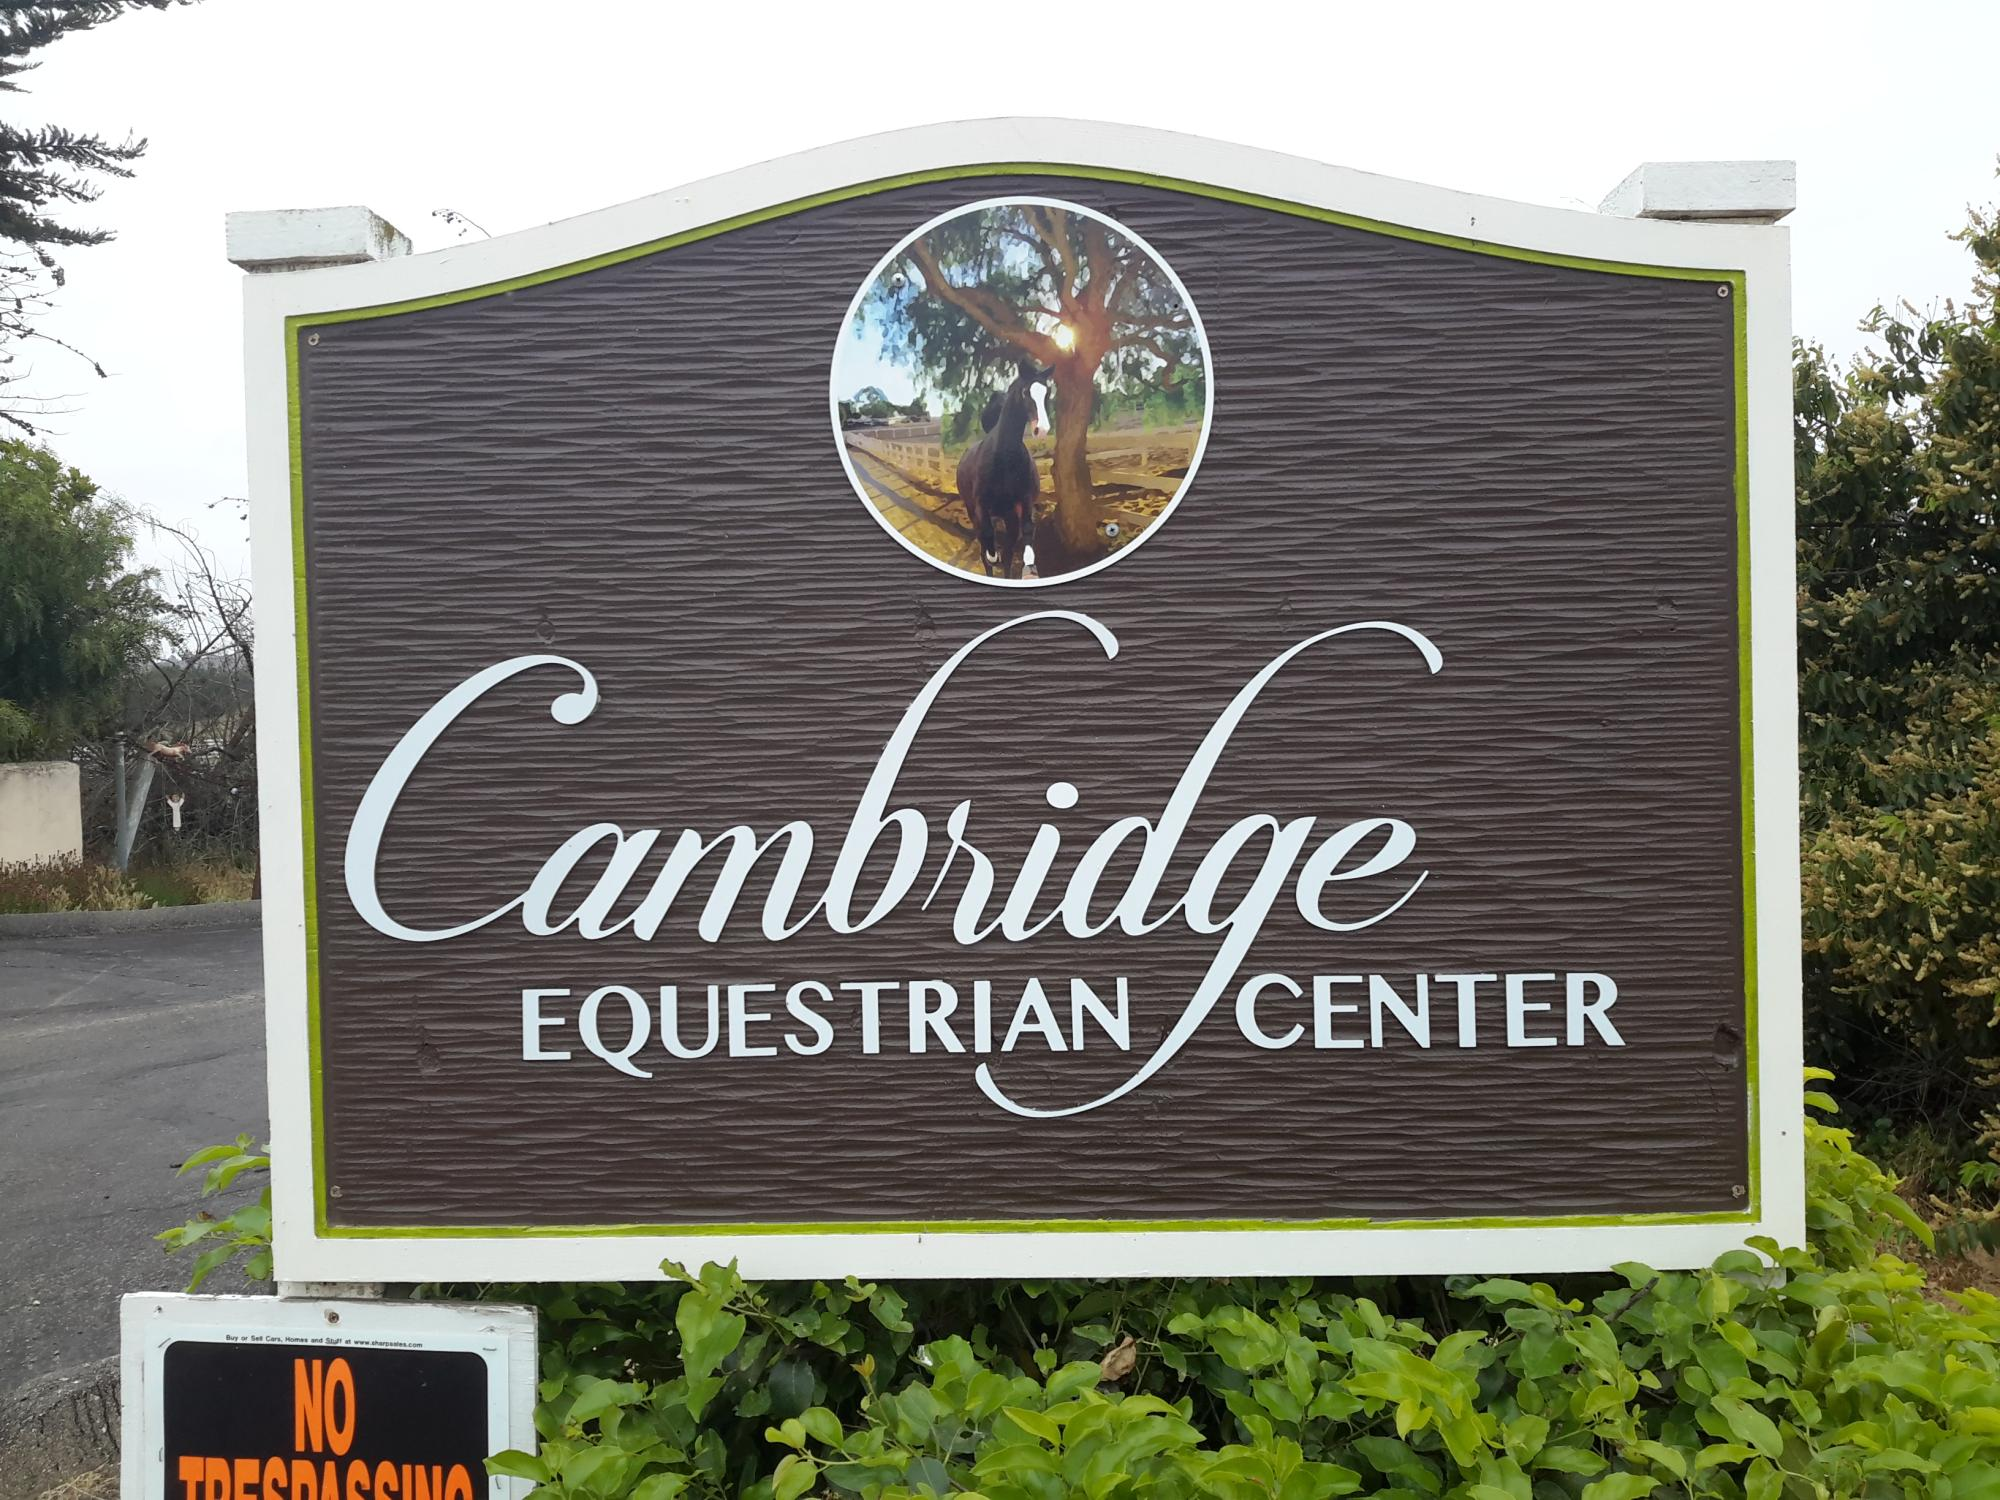 Welcome to Cambridge Equestrian Cntr